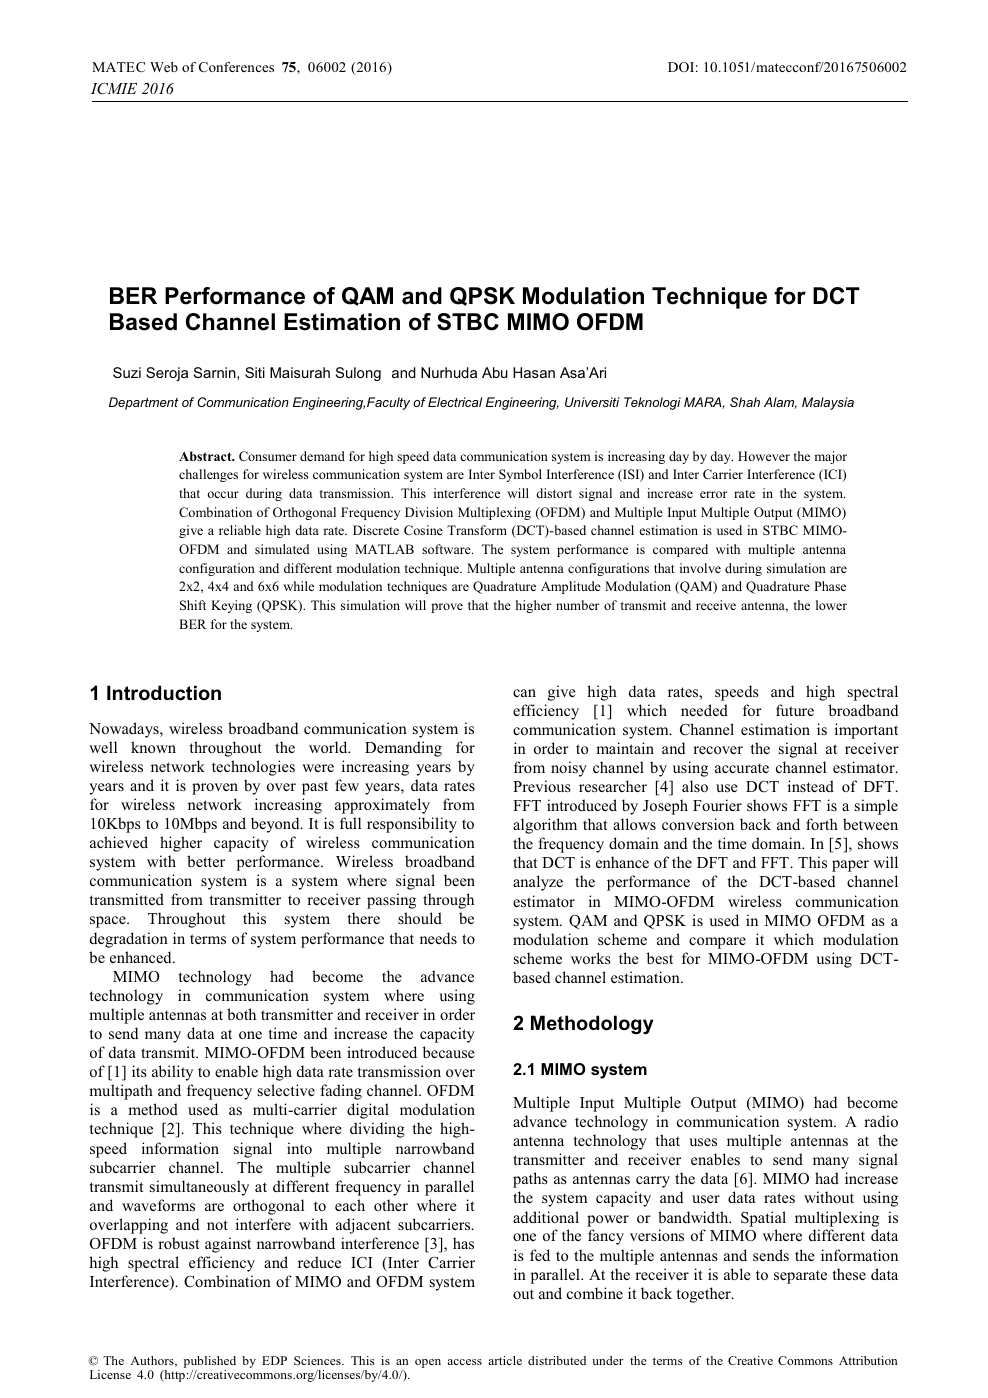 BER Performance of QAM and QPSK Modulation Technique for DCT